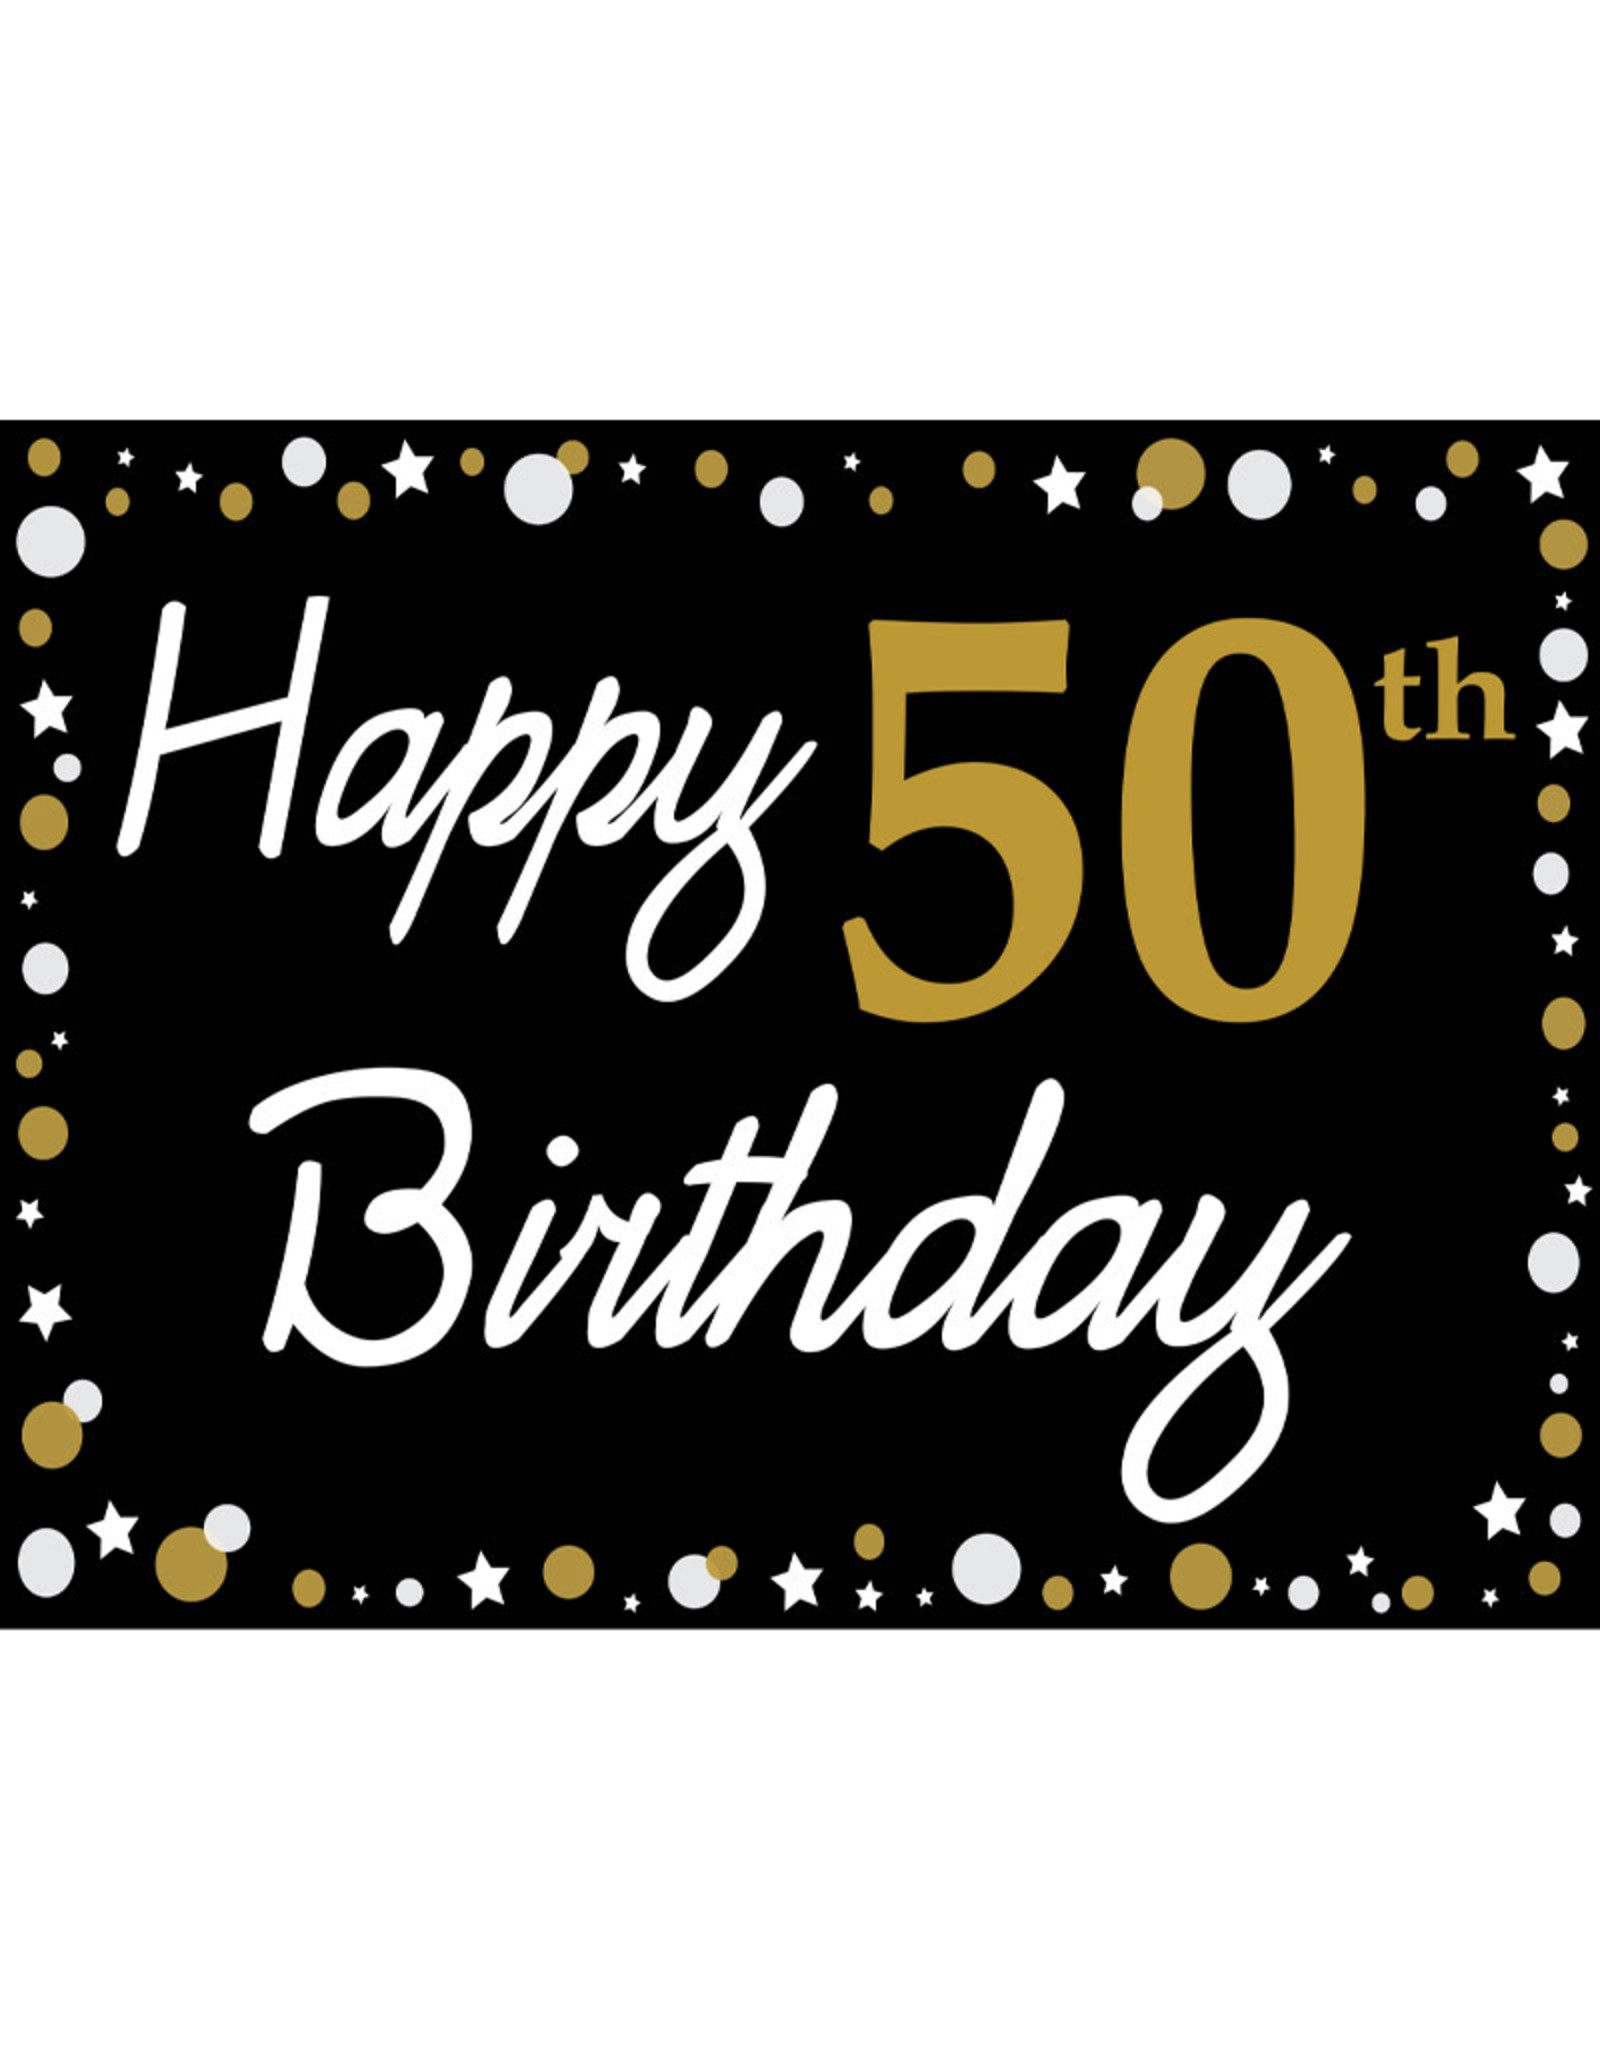 Happy 50th Birthday - Black, Gold & White Yard Sign